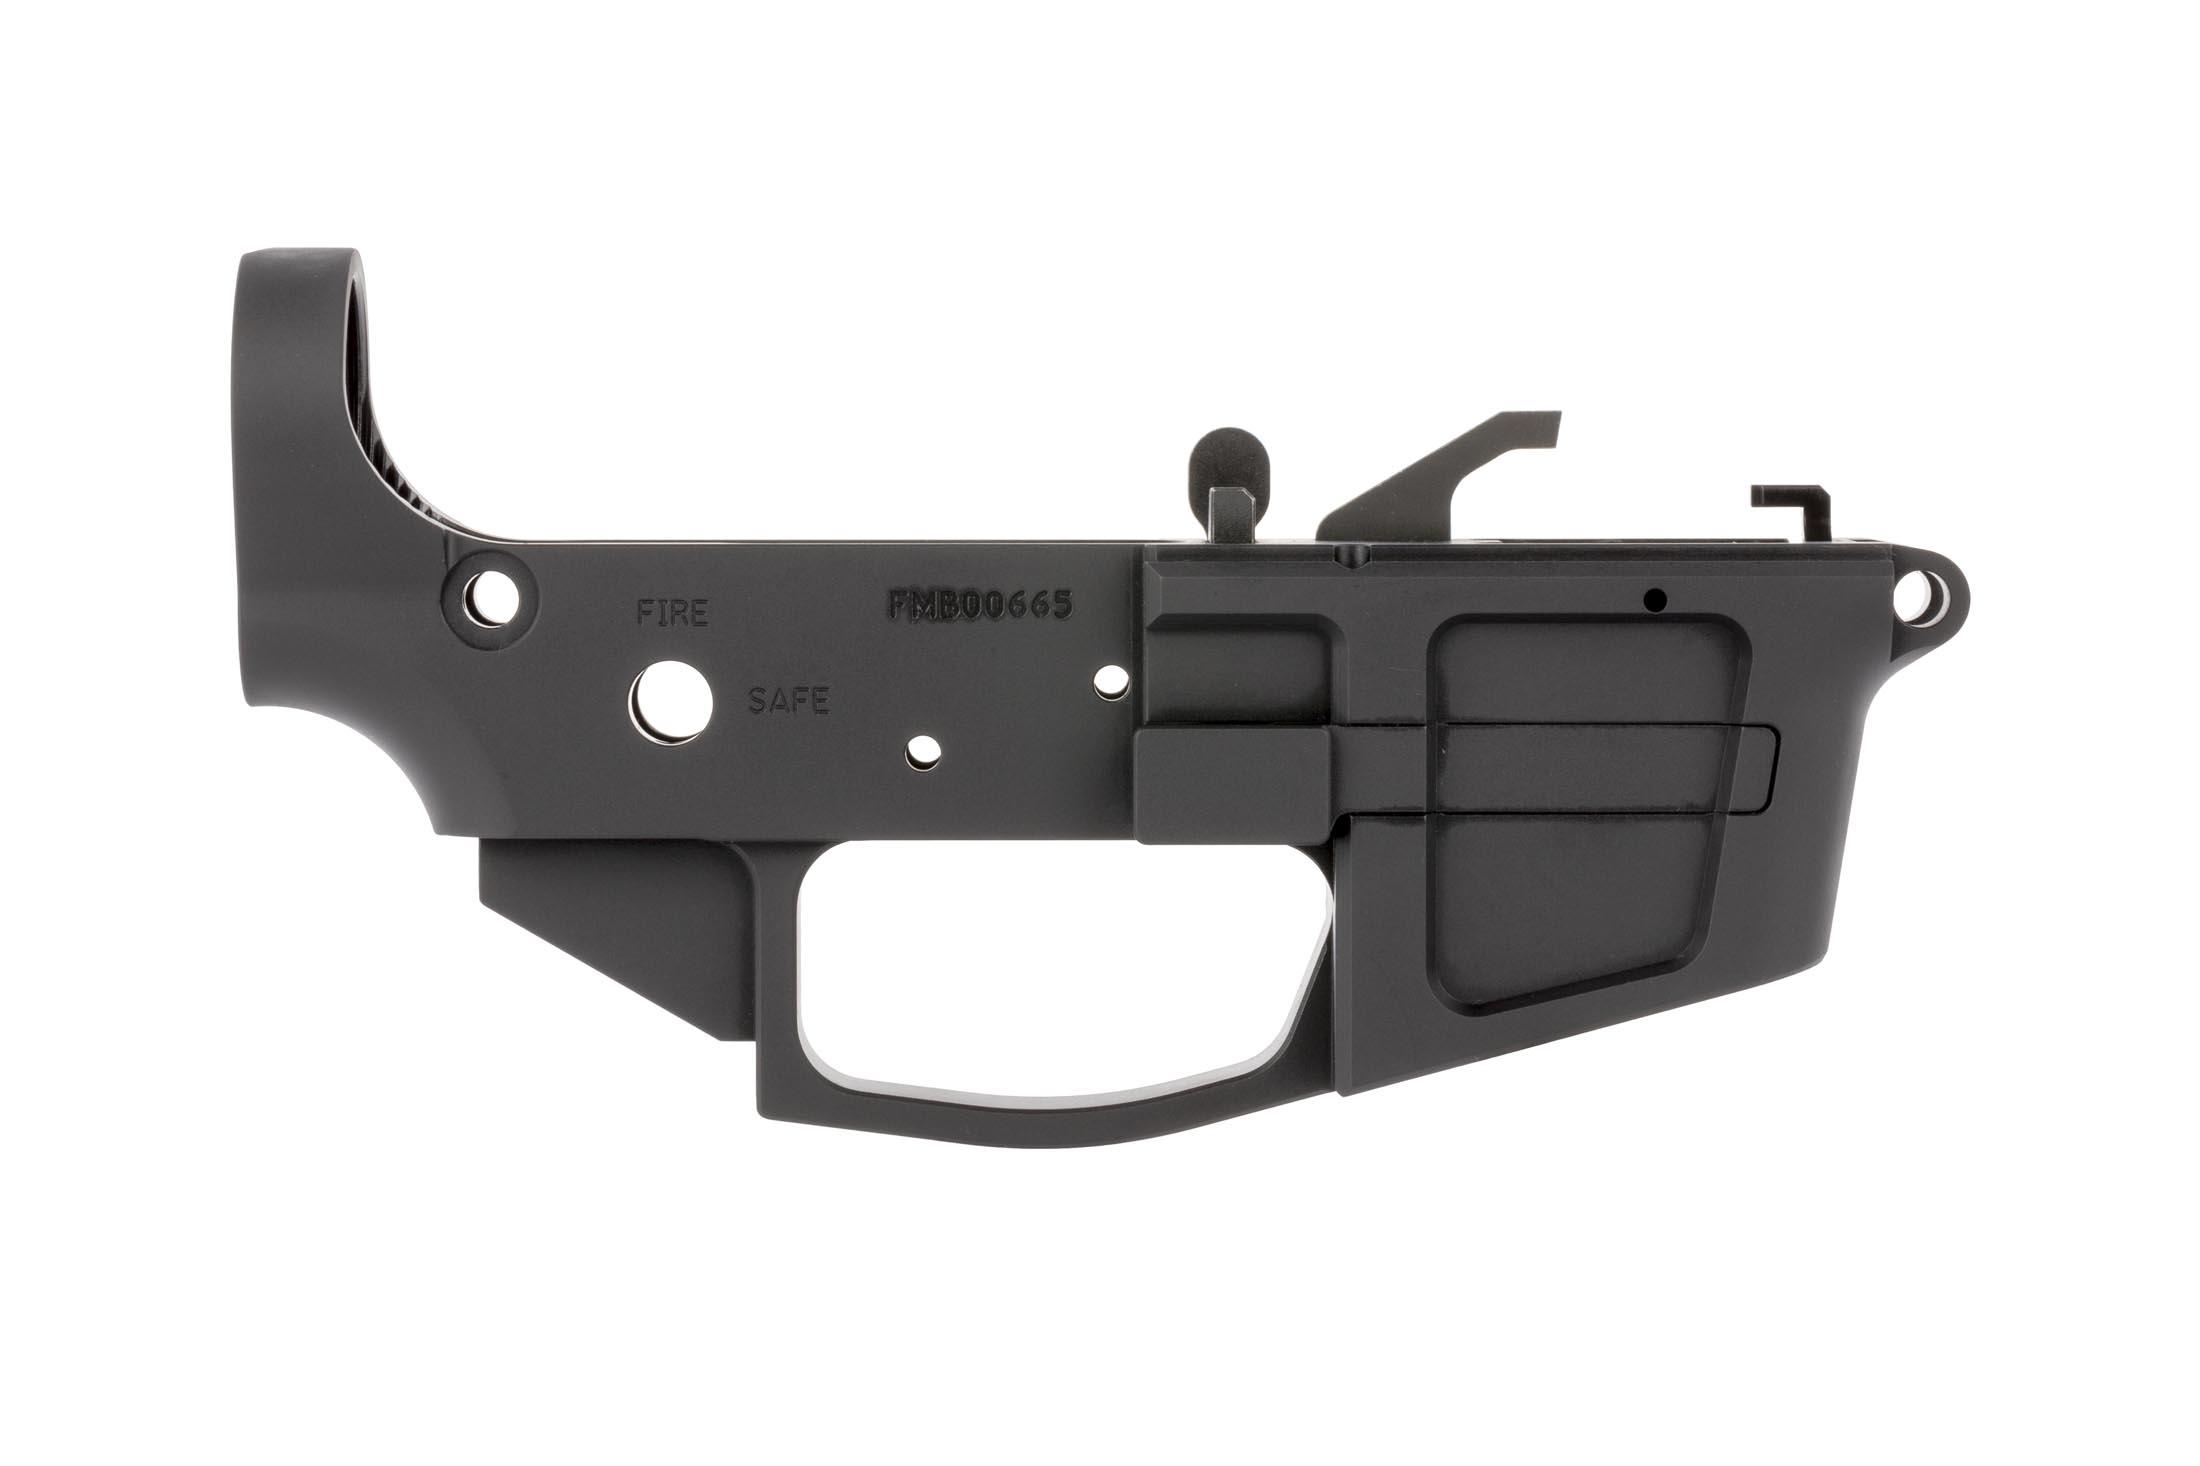 FM Products FM9B stripped billet 9mm lower receiver features an extended magazine release for easy manipulation